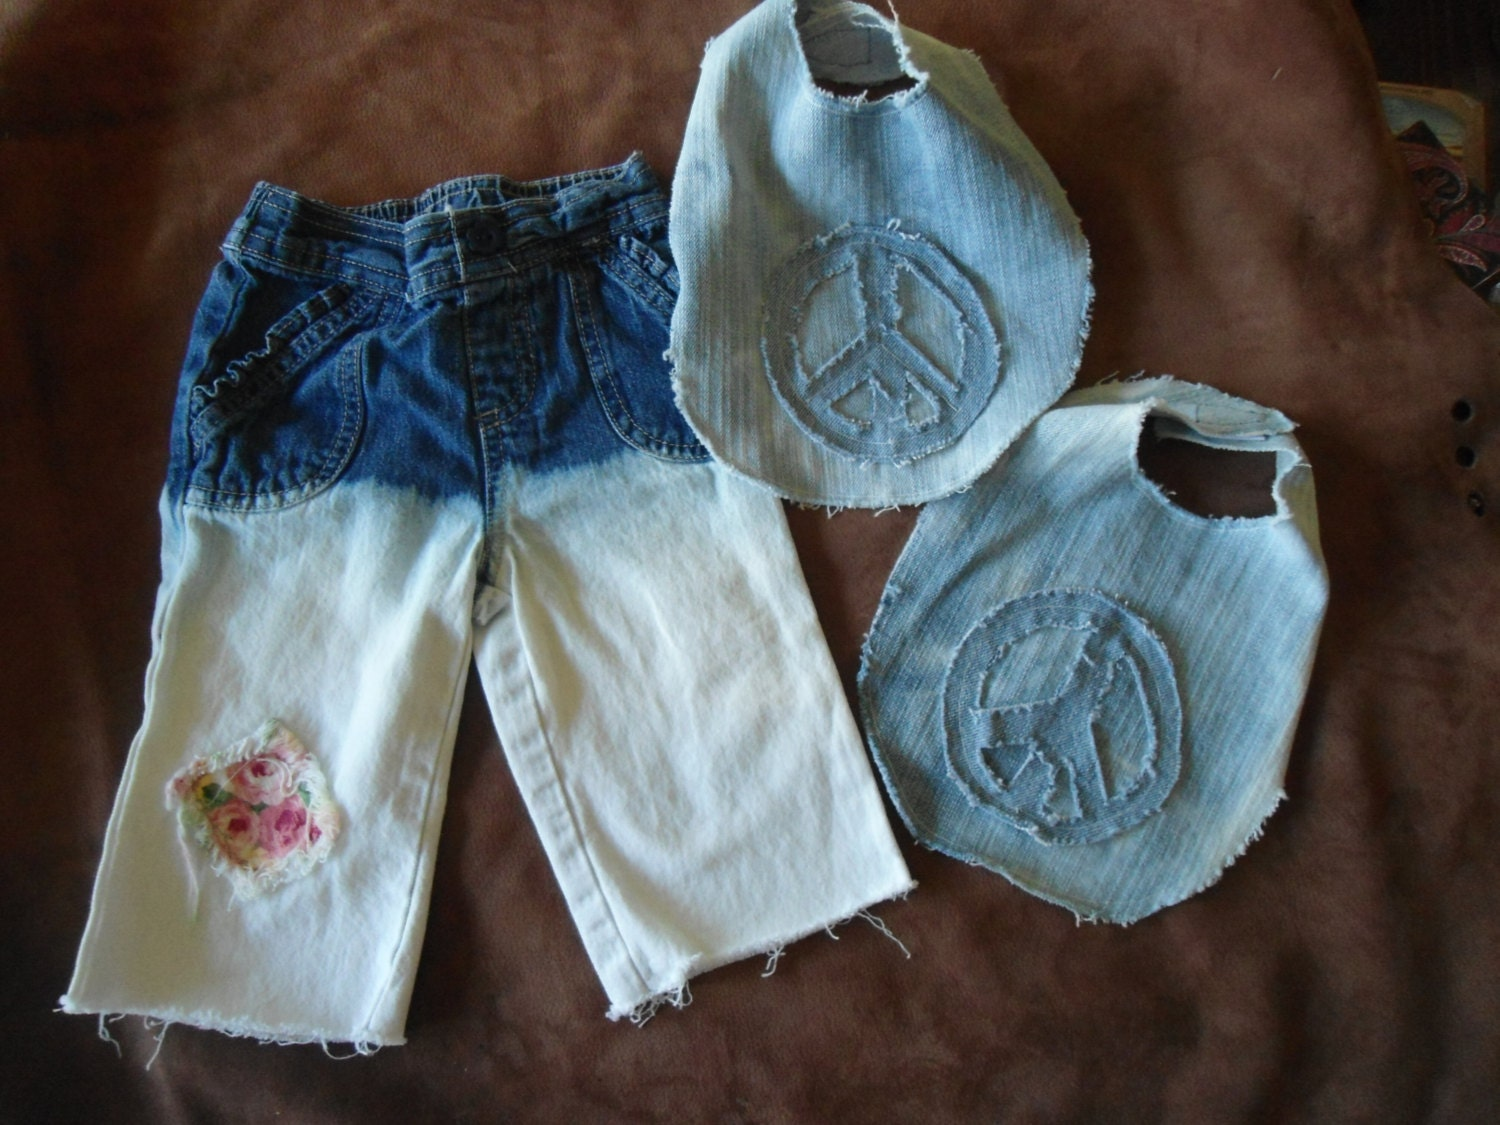 Baby Gifts For Hippie Parents : Hippie jeans newborn gift set baby size months on sale